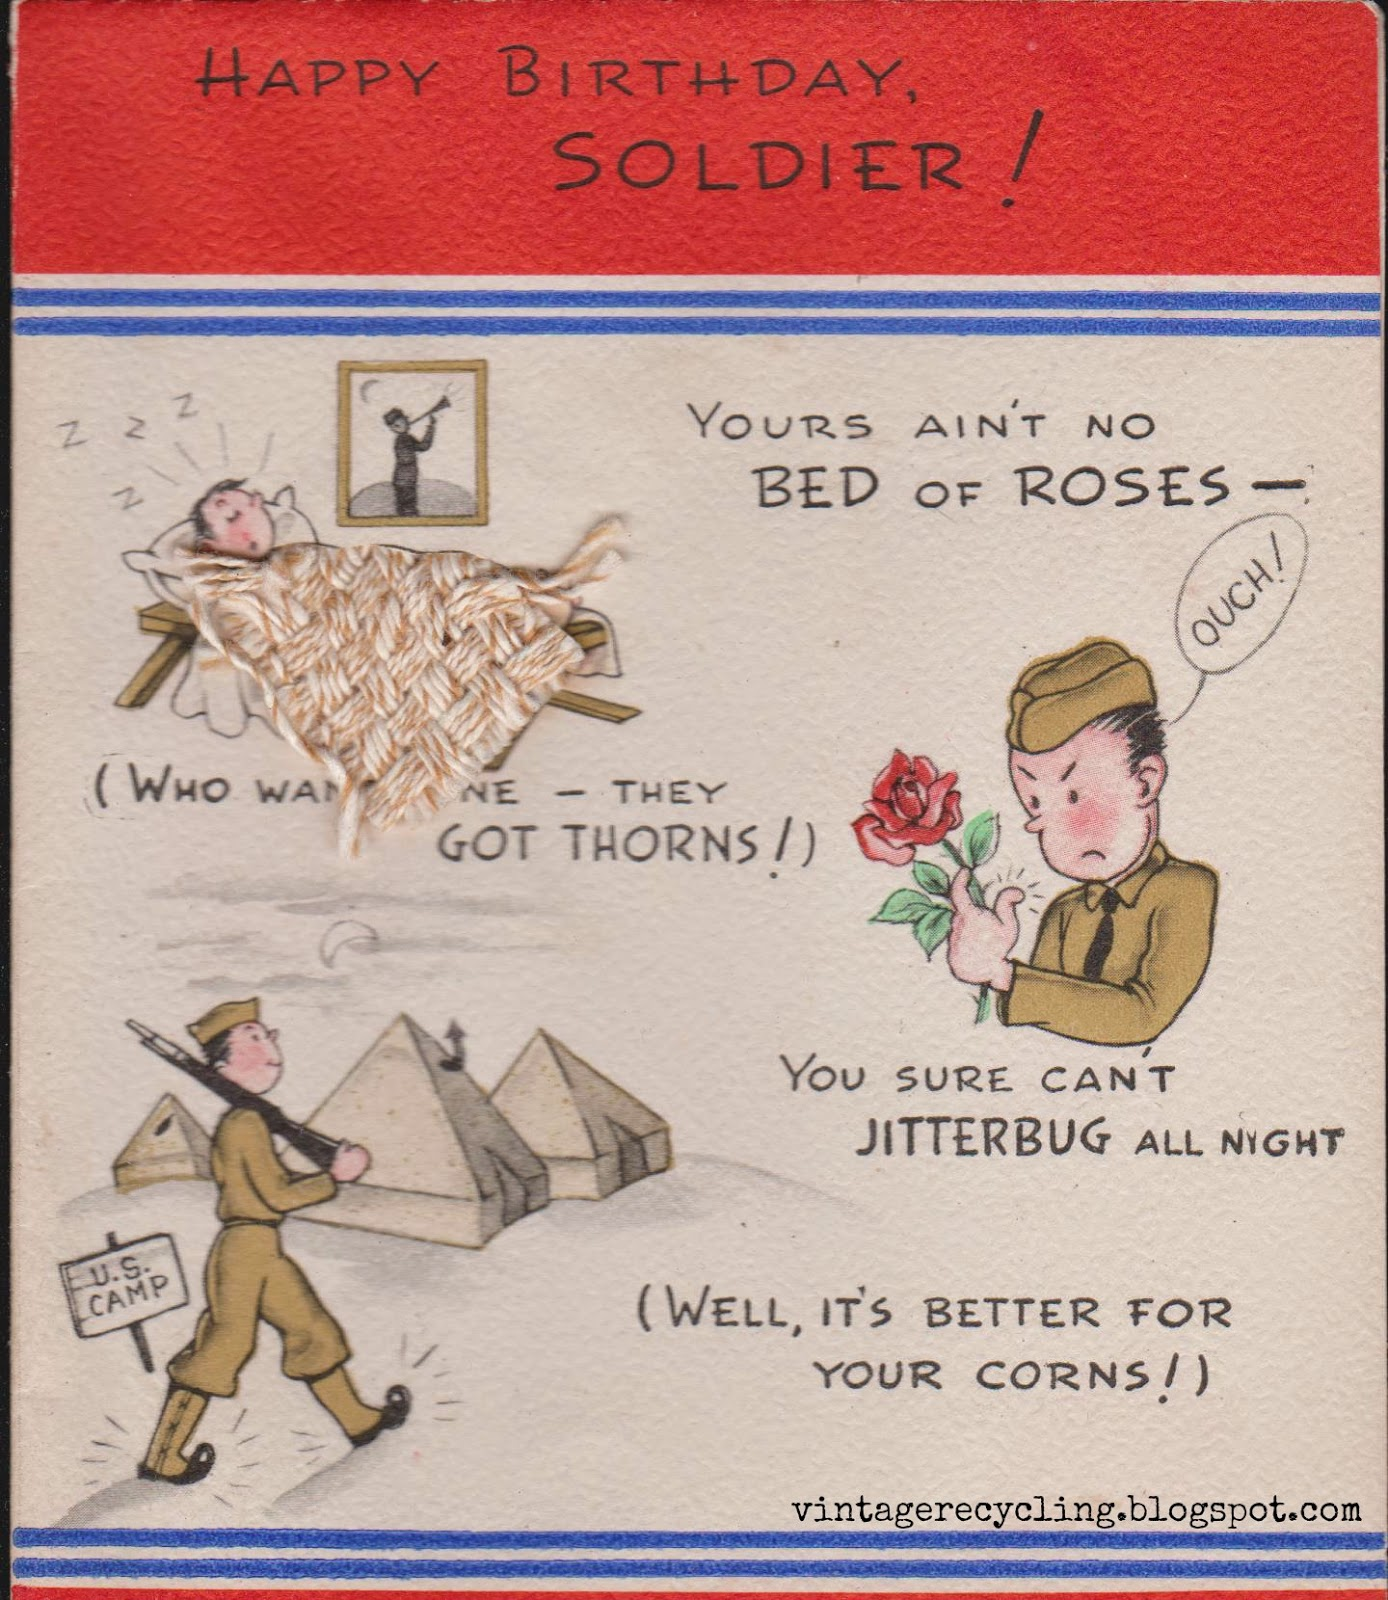 vintage recycling: 1940s WWII greeting cards for Soldiers